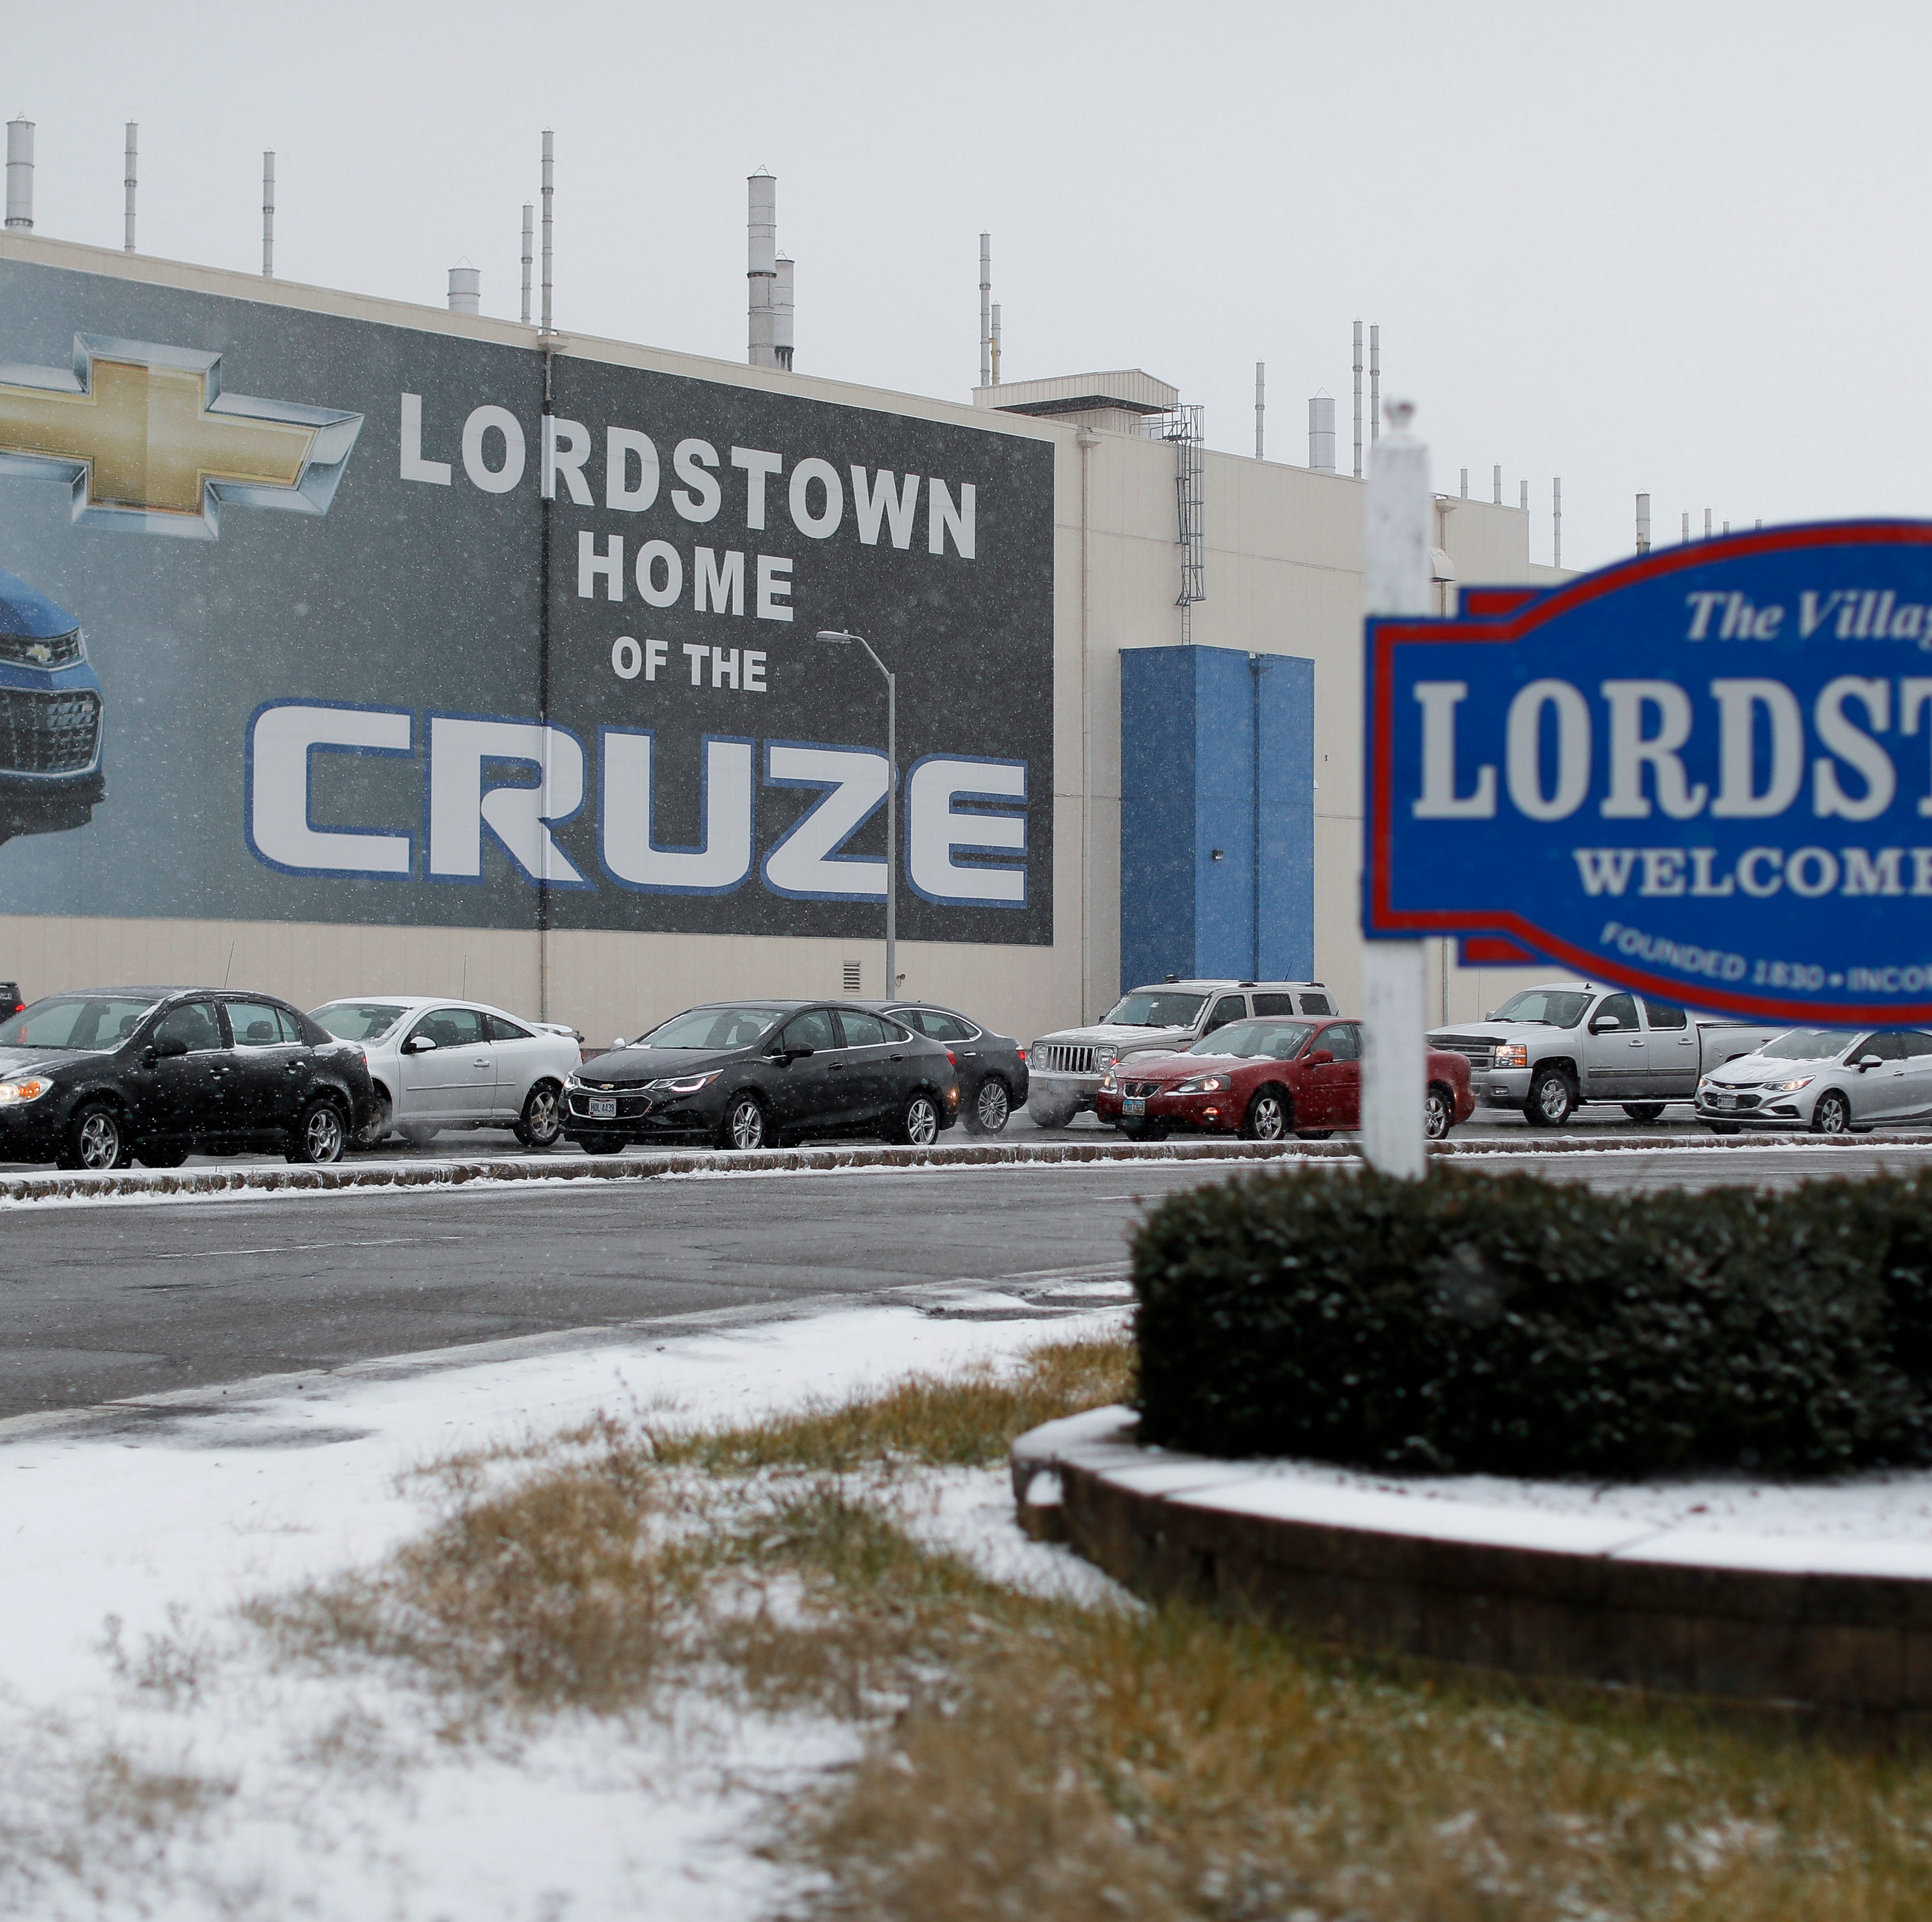 President Donald Trump to GM, UAW: Start Lordstown plant talks now